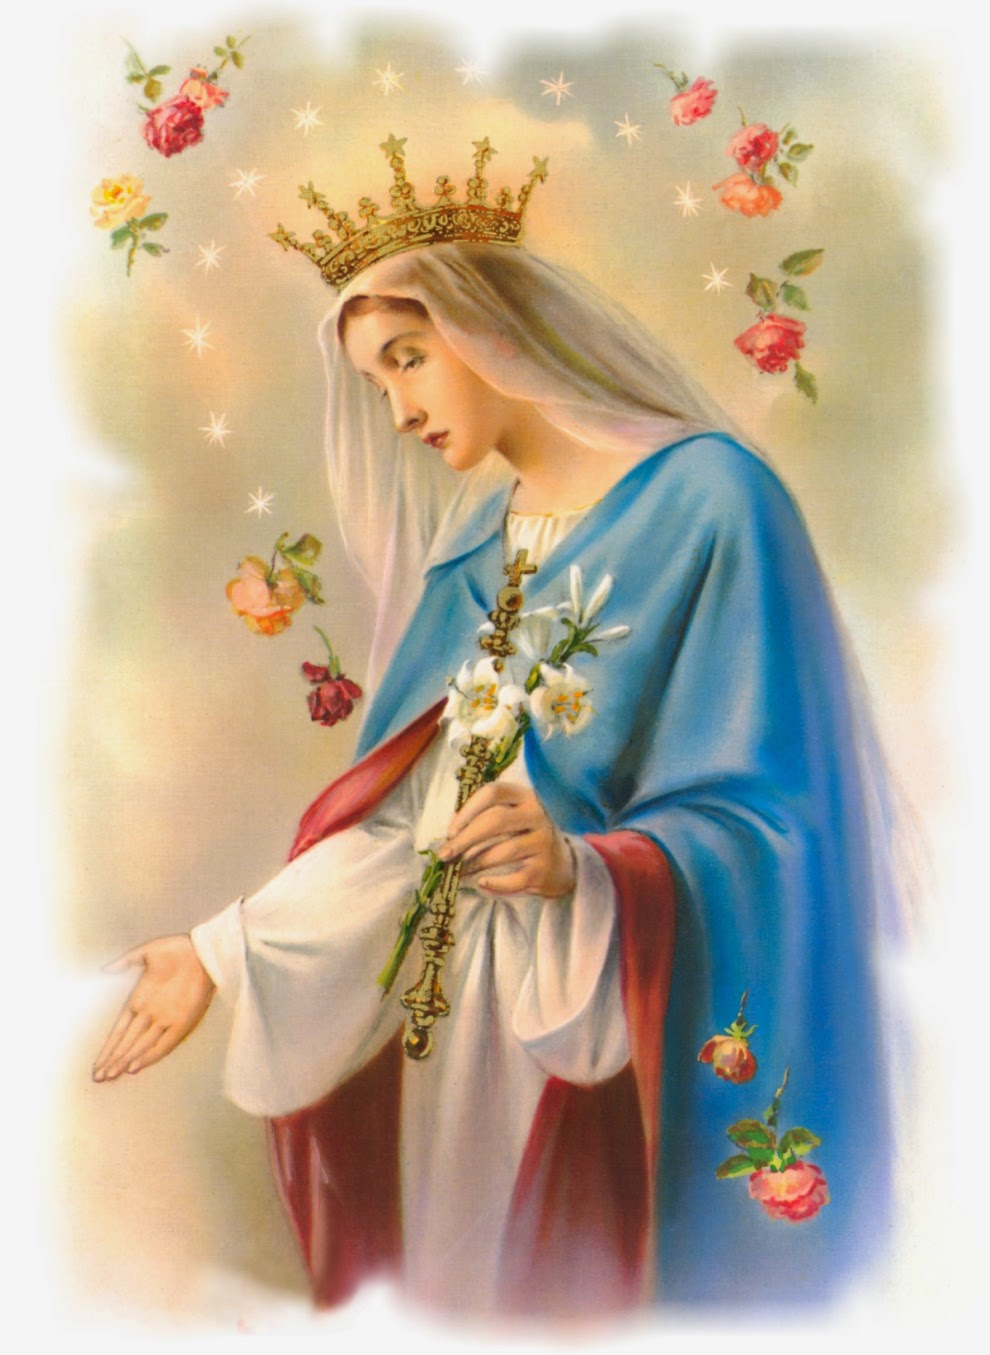 8 Pictures of our blessed virgin mary